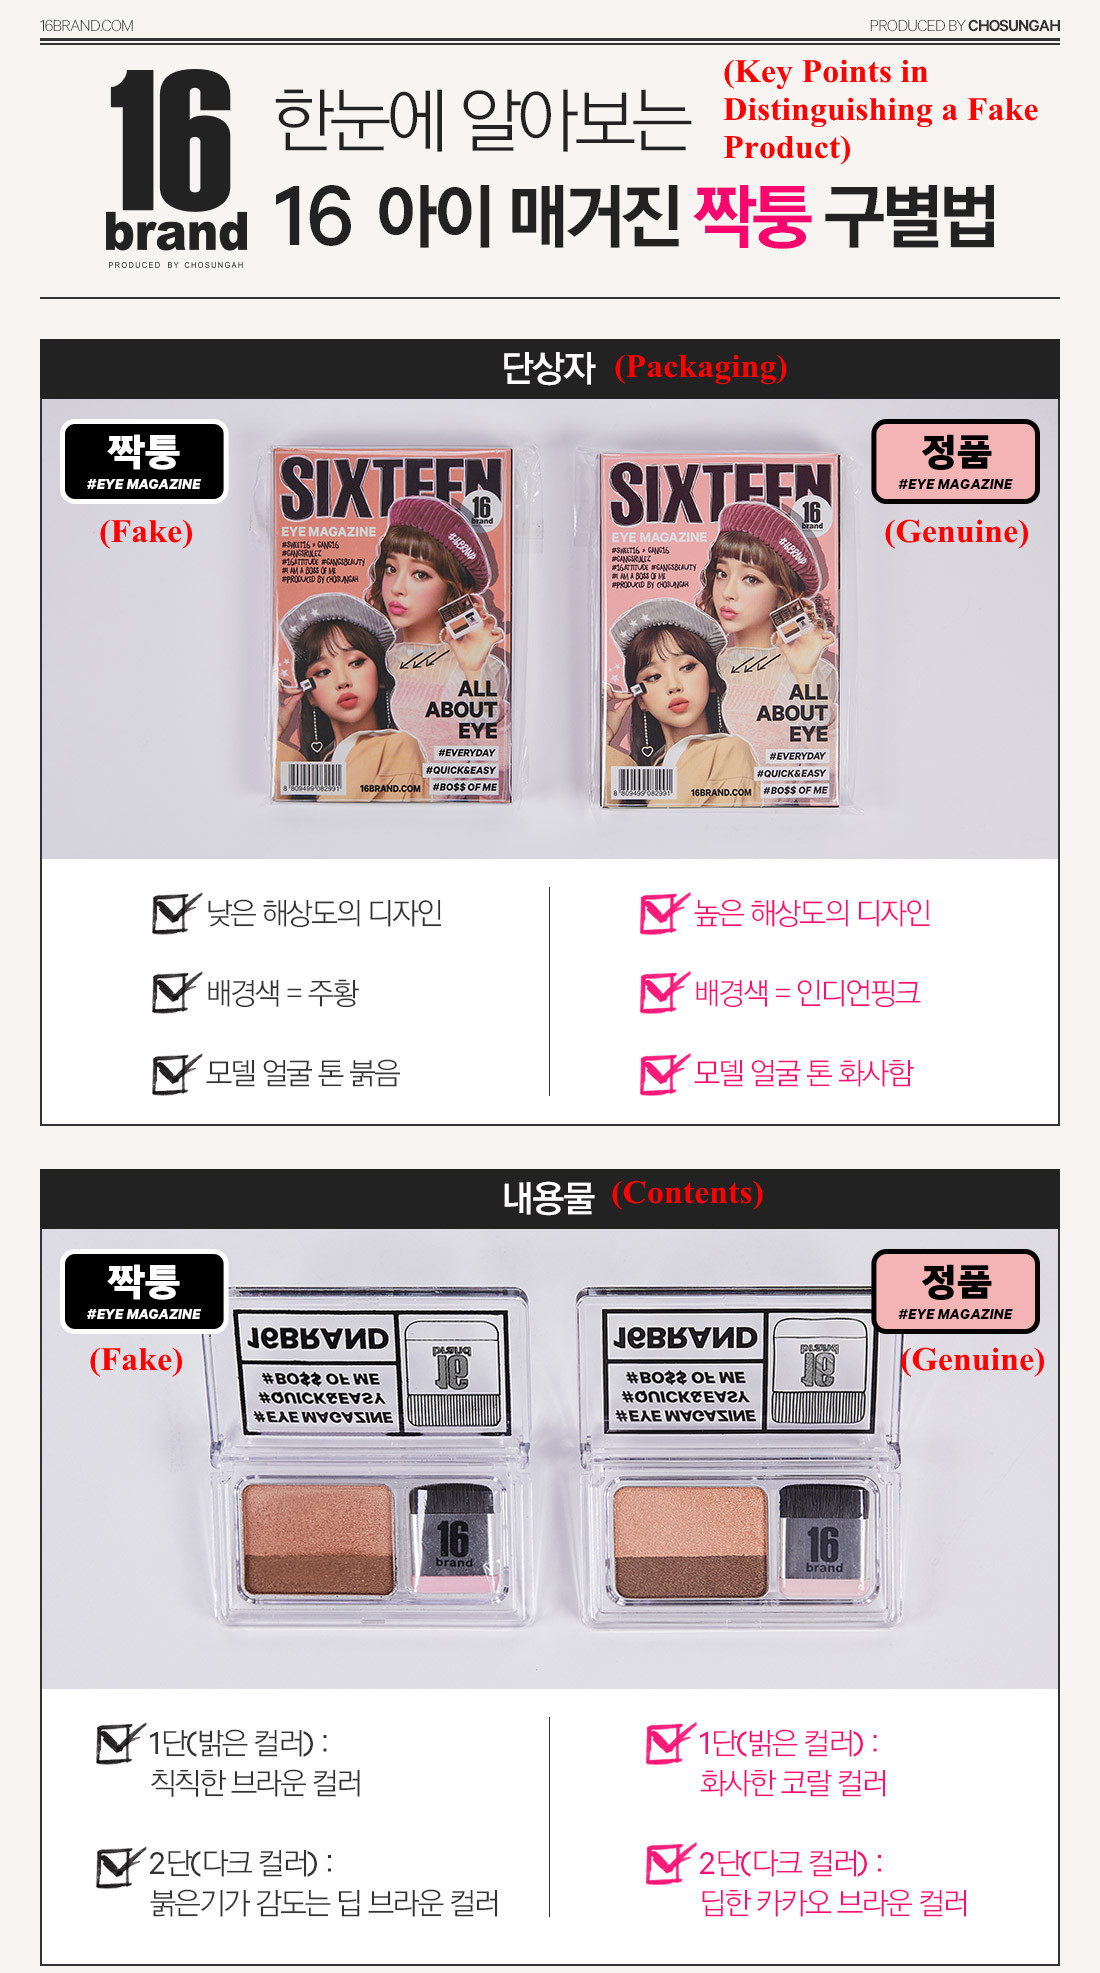 16 Brand Beware Of Fakes New Shades Are In Sixteen Eye Magazine Shadow Official Statement Produced By Parent Company Chosungah22